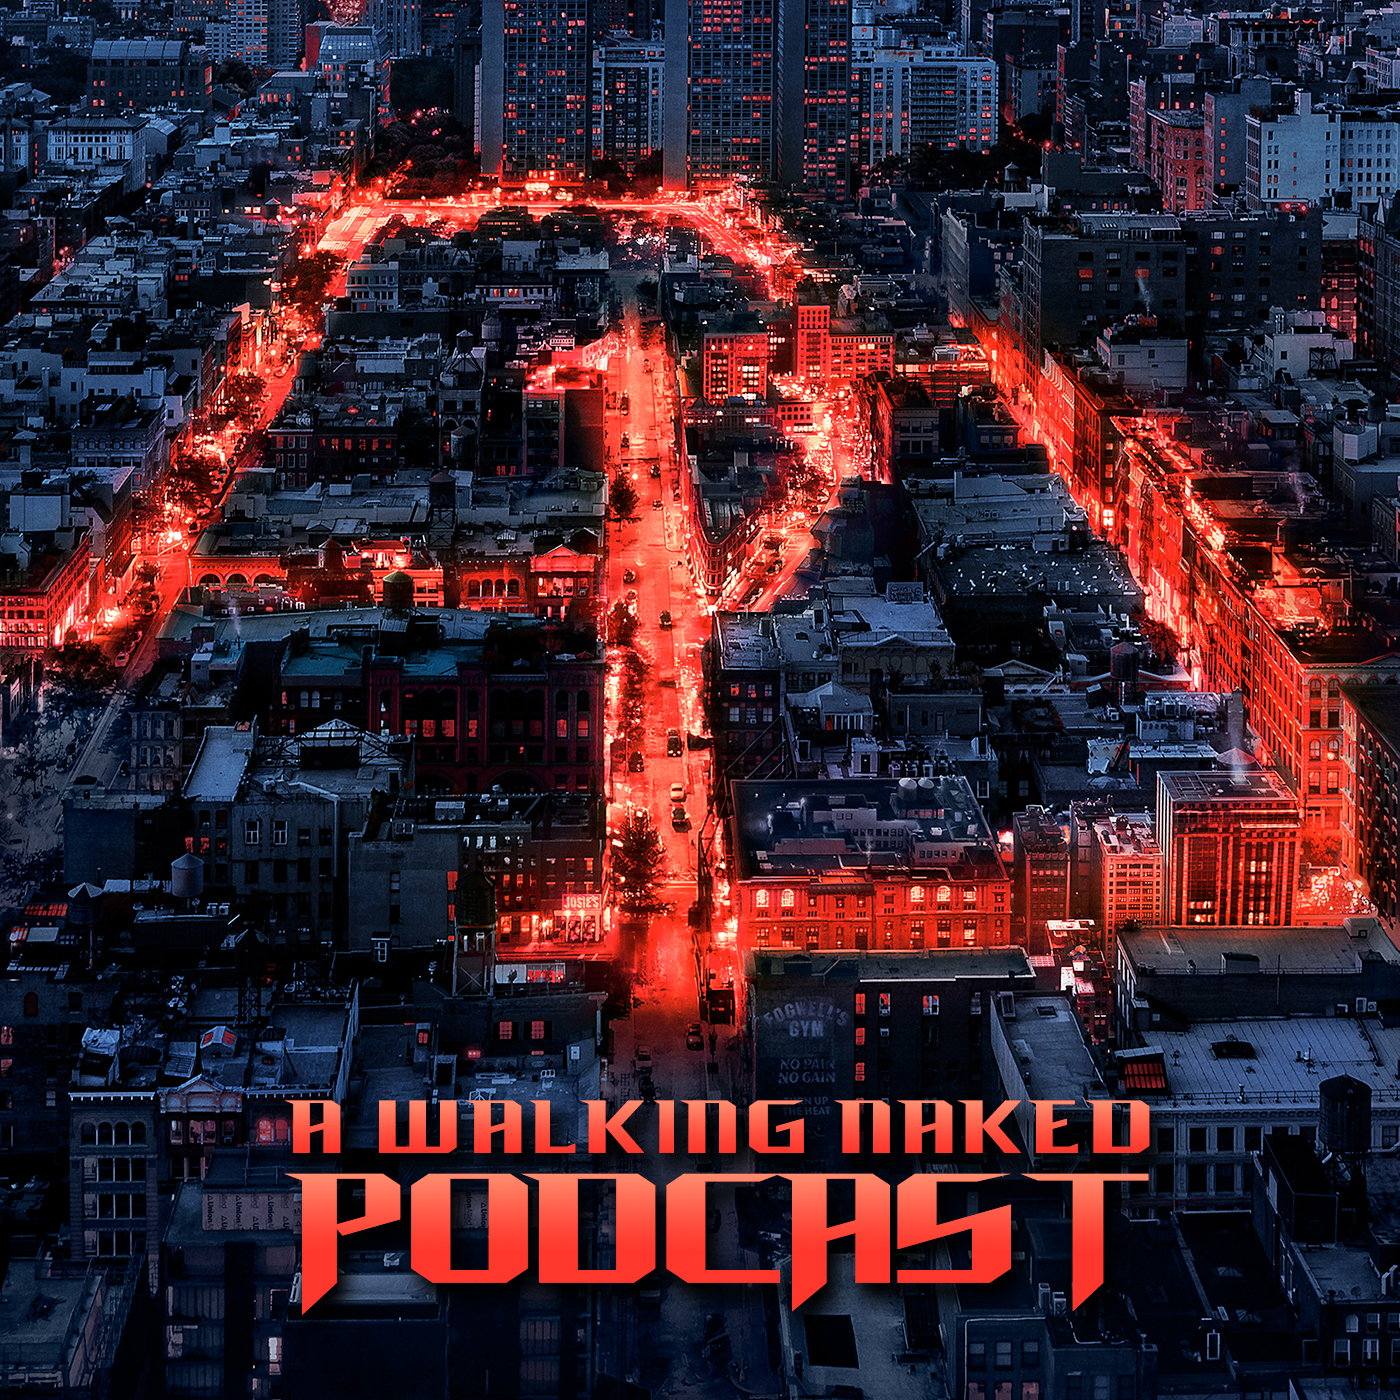 Daredevil: A Walking Naked Podcast